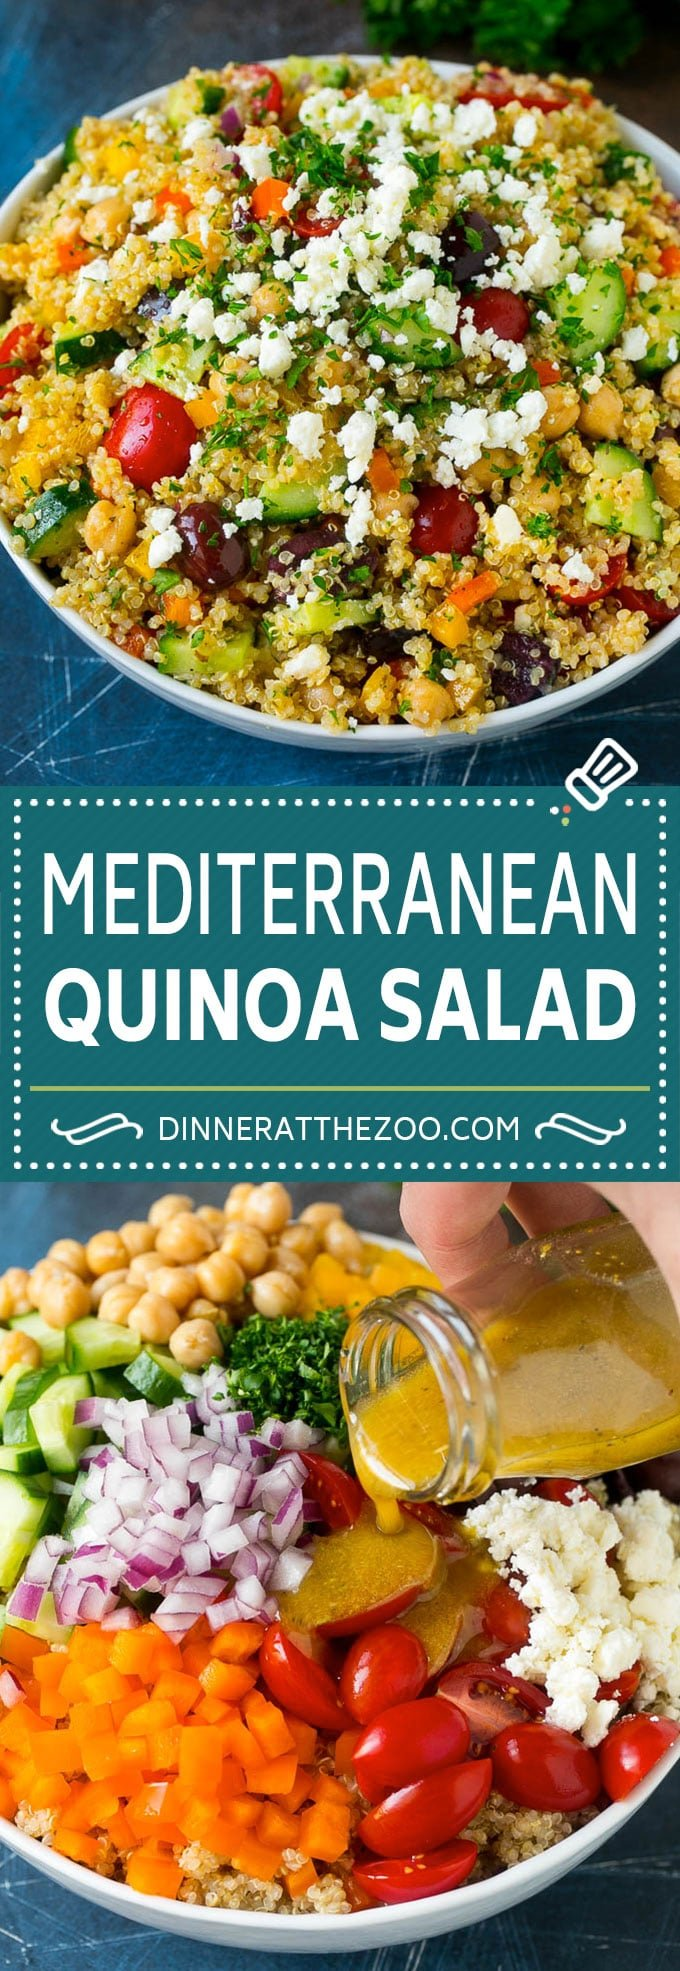 Mediterranean Quinoa Salad Recipe | Healthy Quinoa Salad | Chopped Salad #quinoa #healthy #cleaneating #lunch #dinner #dinneratthezoo